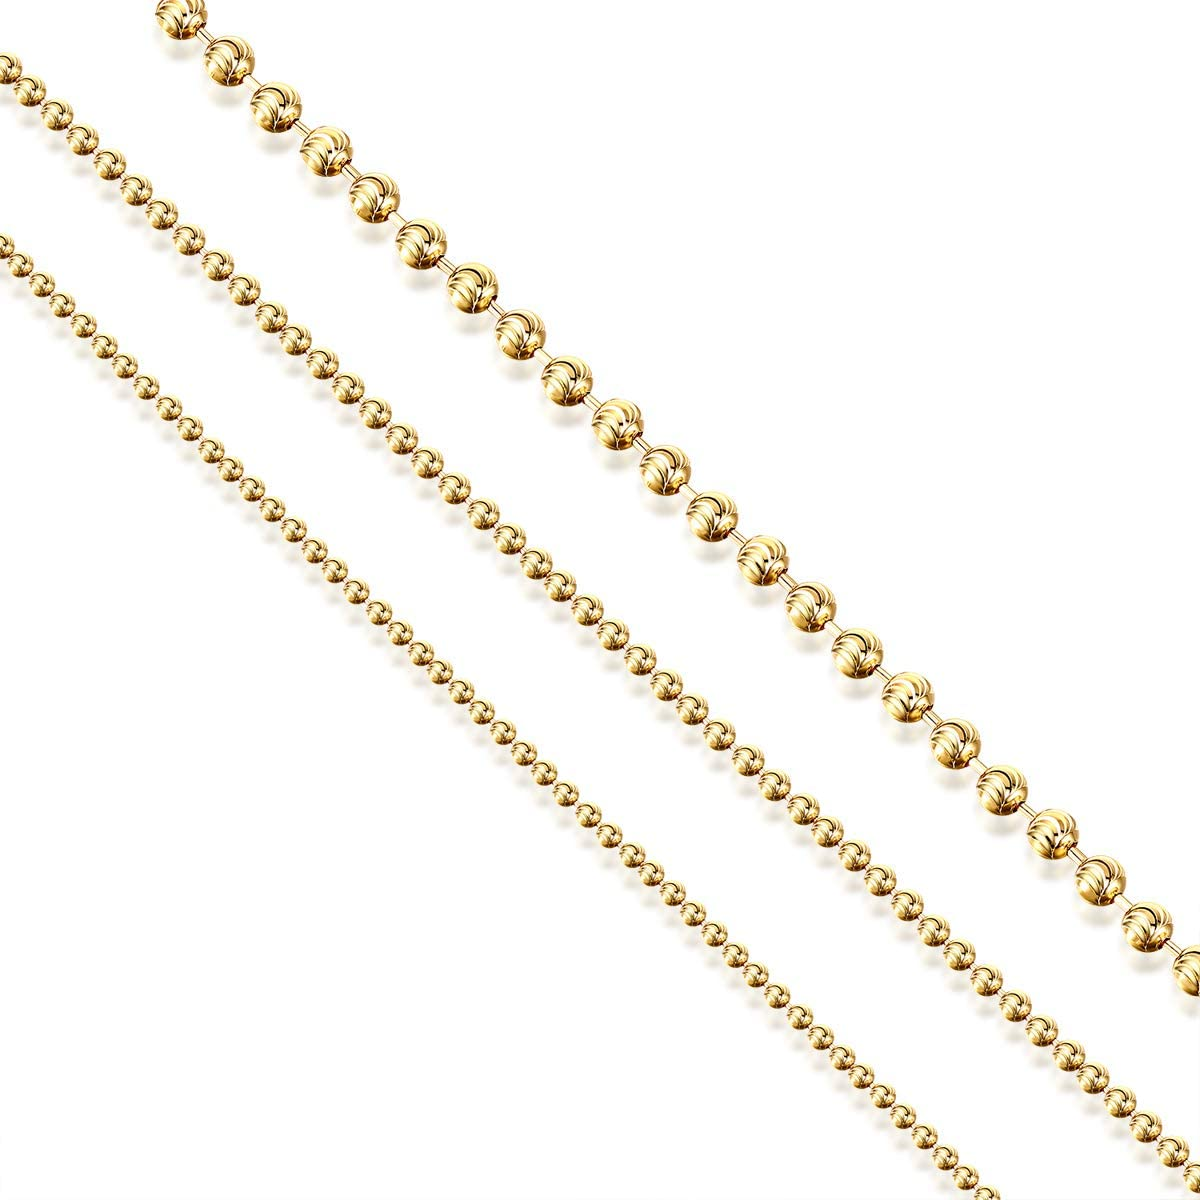 16-28 Inches AINUOSHI 2.0-5.0mm Solid/925/Italy Moon Cut Chain Necklace Yellow Gold Plated Sterling Silver Bead Ball Chain Necklace for Men /& Women